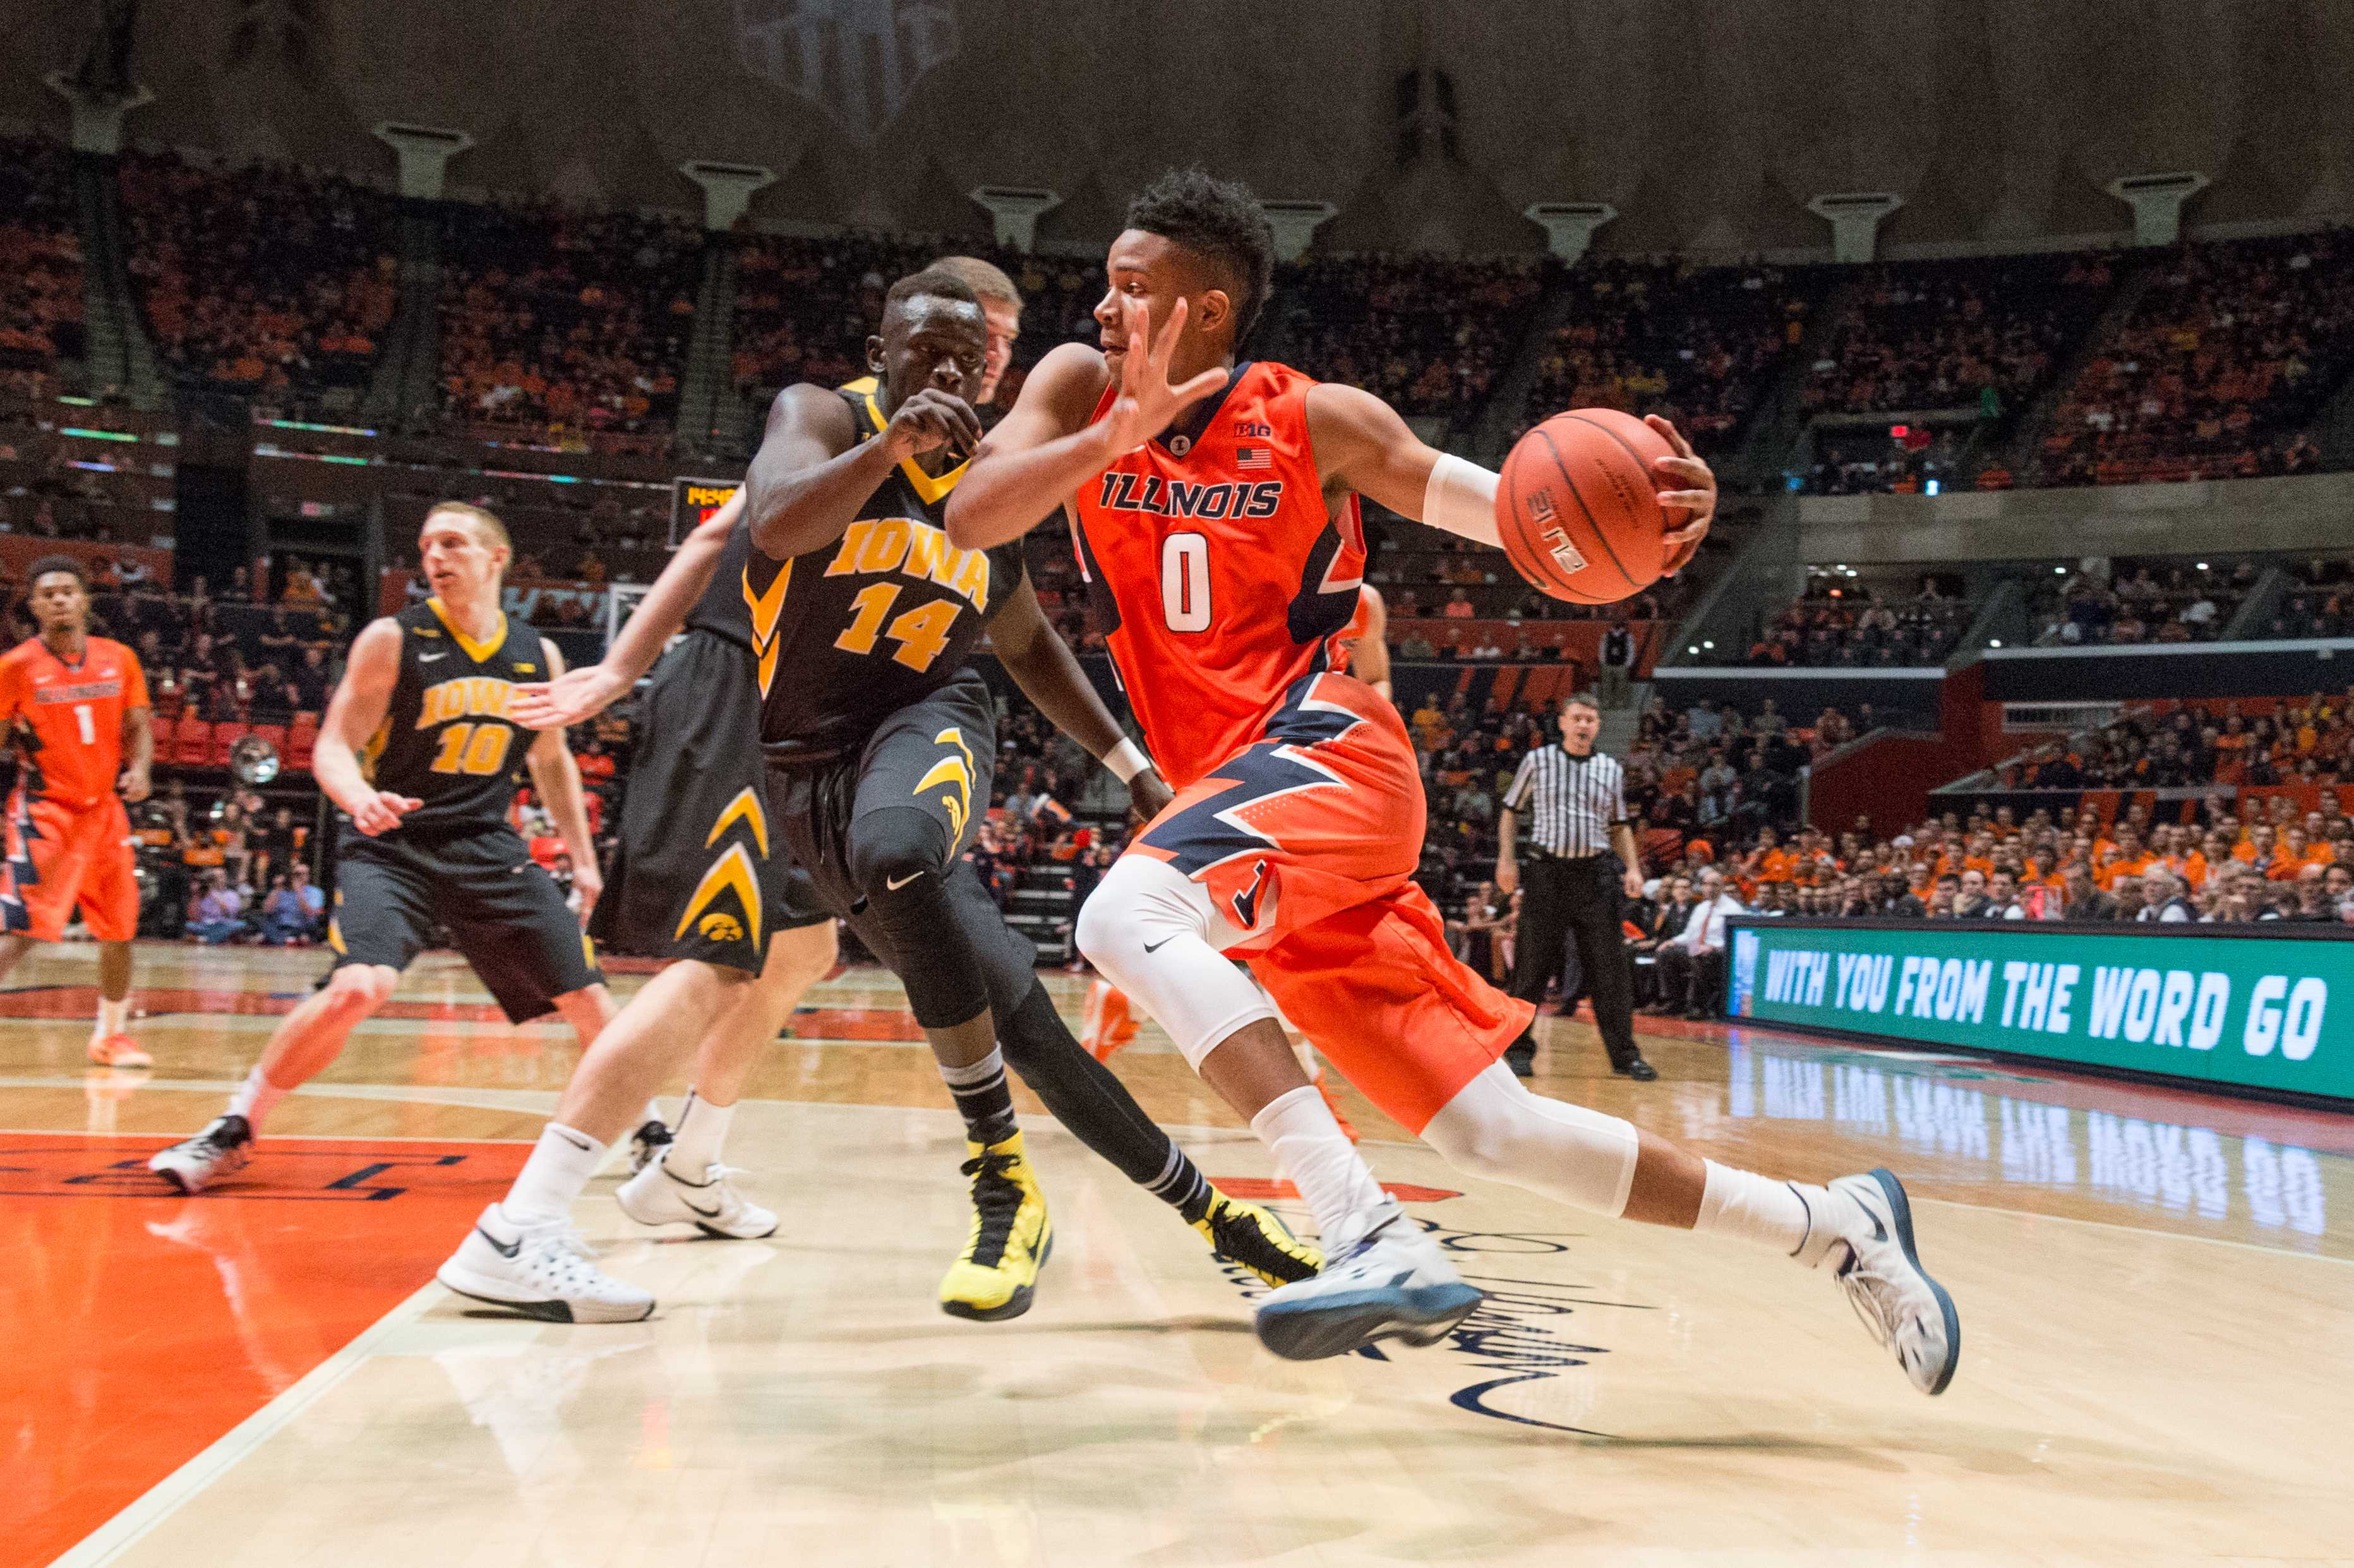 Illinois' D.J. Williams drives to the basket during the game against Iowa at the State Farm Center on February 7. The Illini lost 77-65.